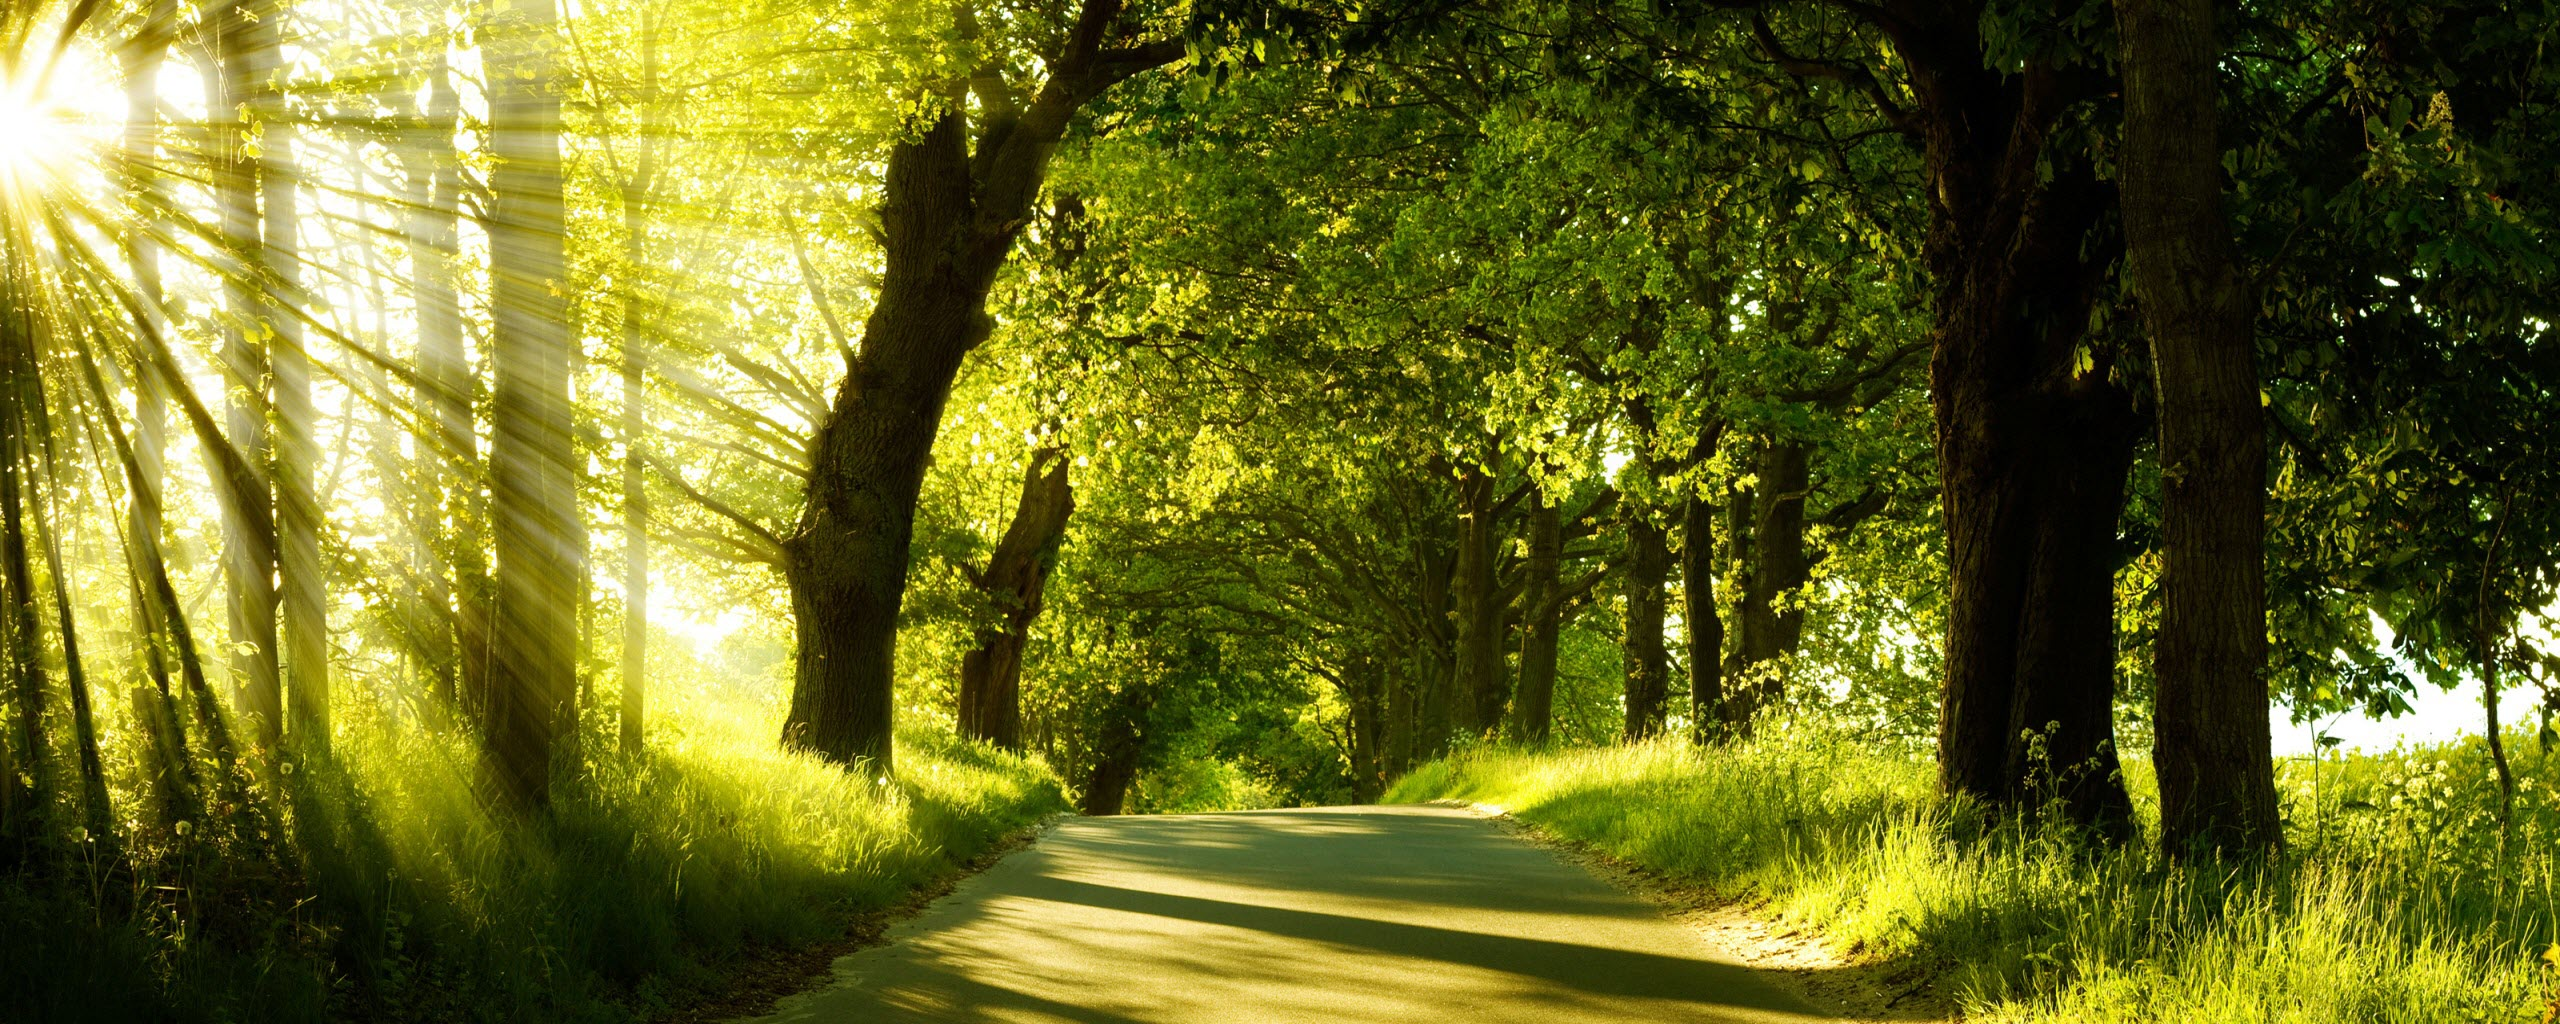 Green Nature Dual Monitor Wallpapers   HD Wallpapers   ID #8220